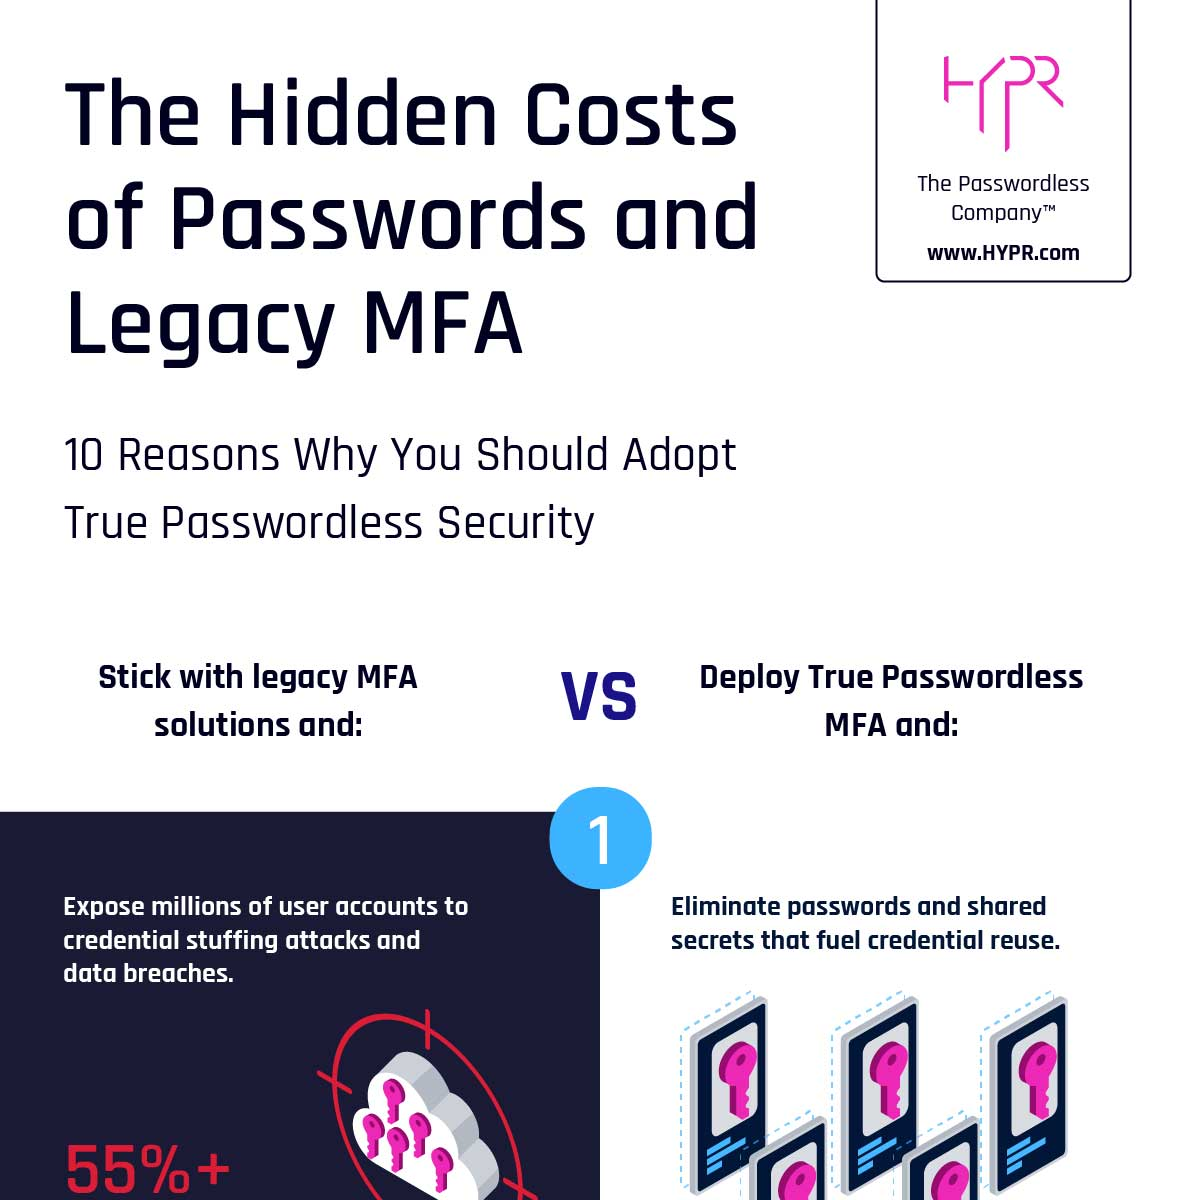 Hidden Costs of Passwords and Legacy MFA